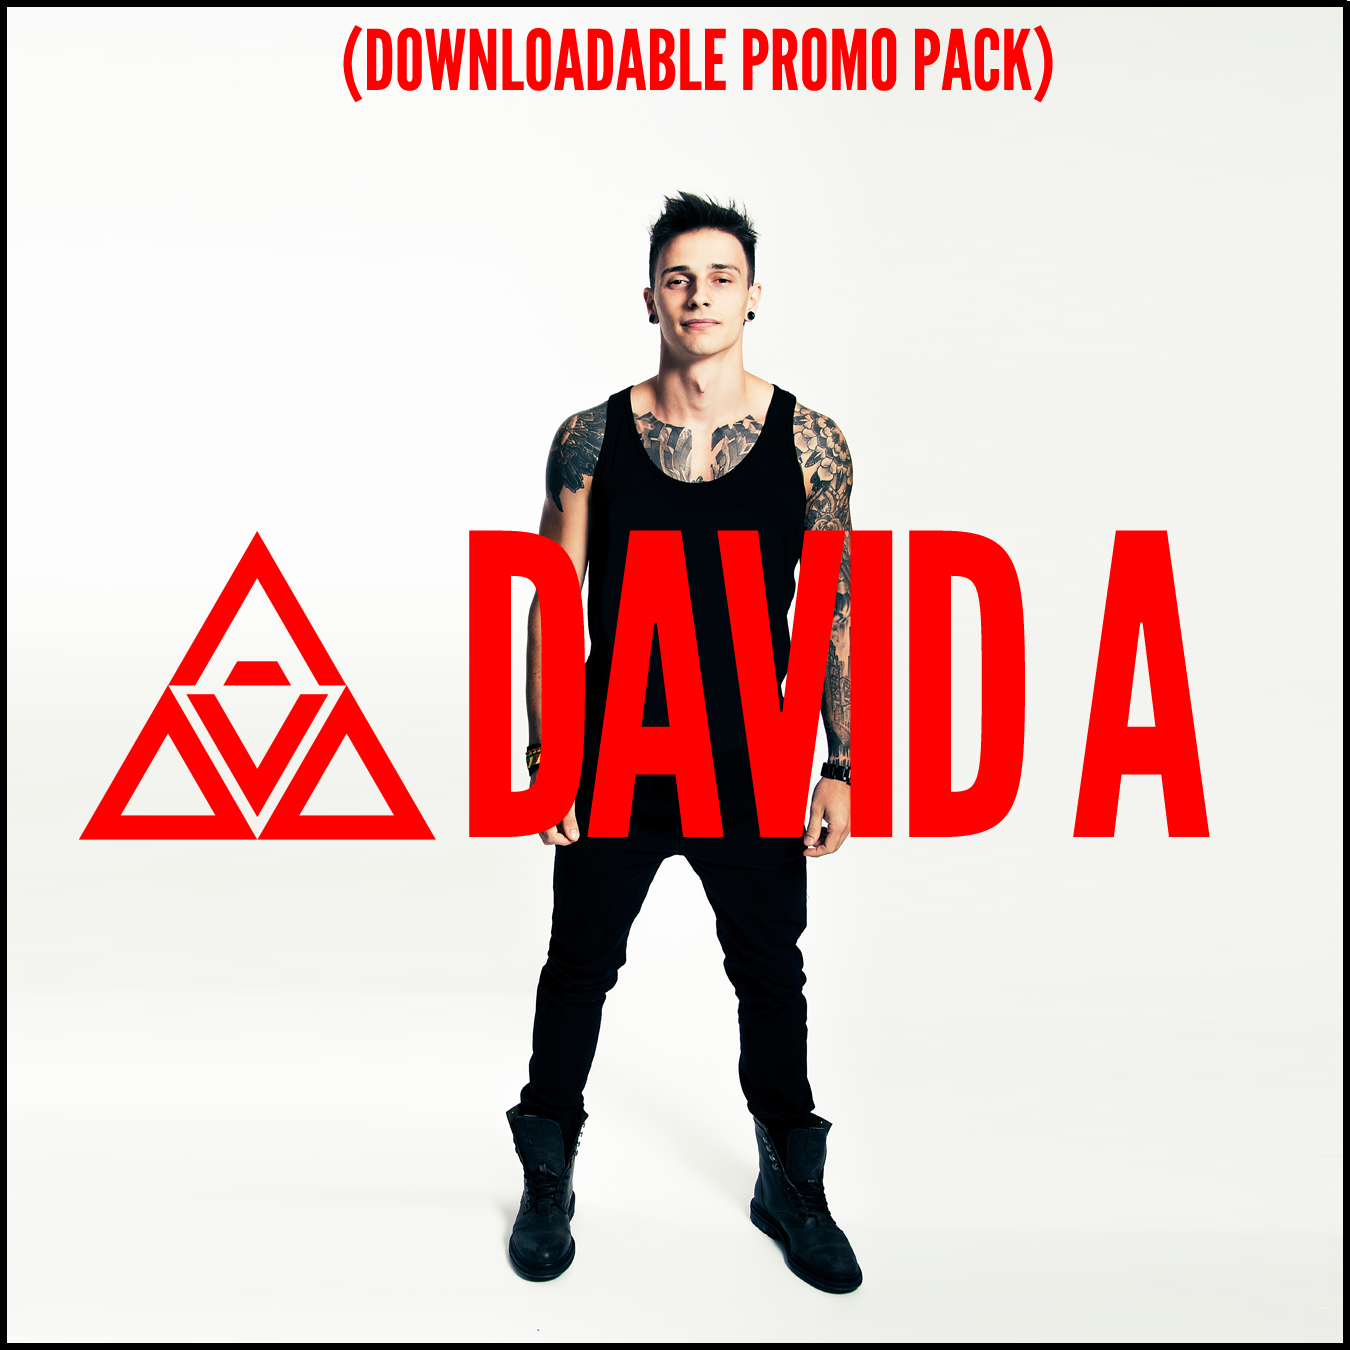 David A - Downloadable Promo Pack